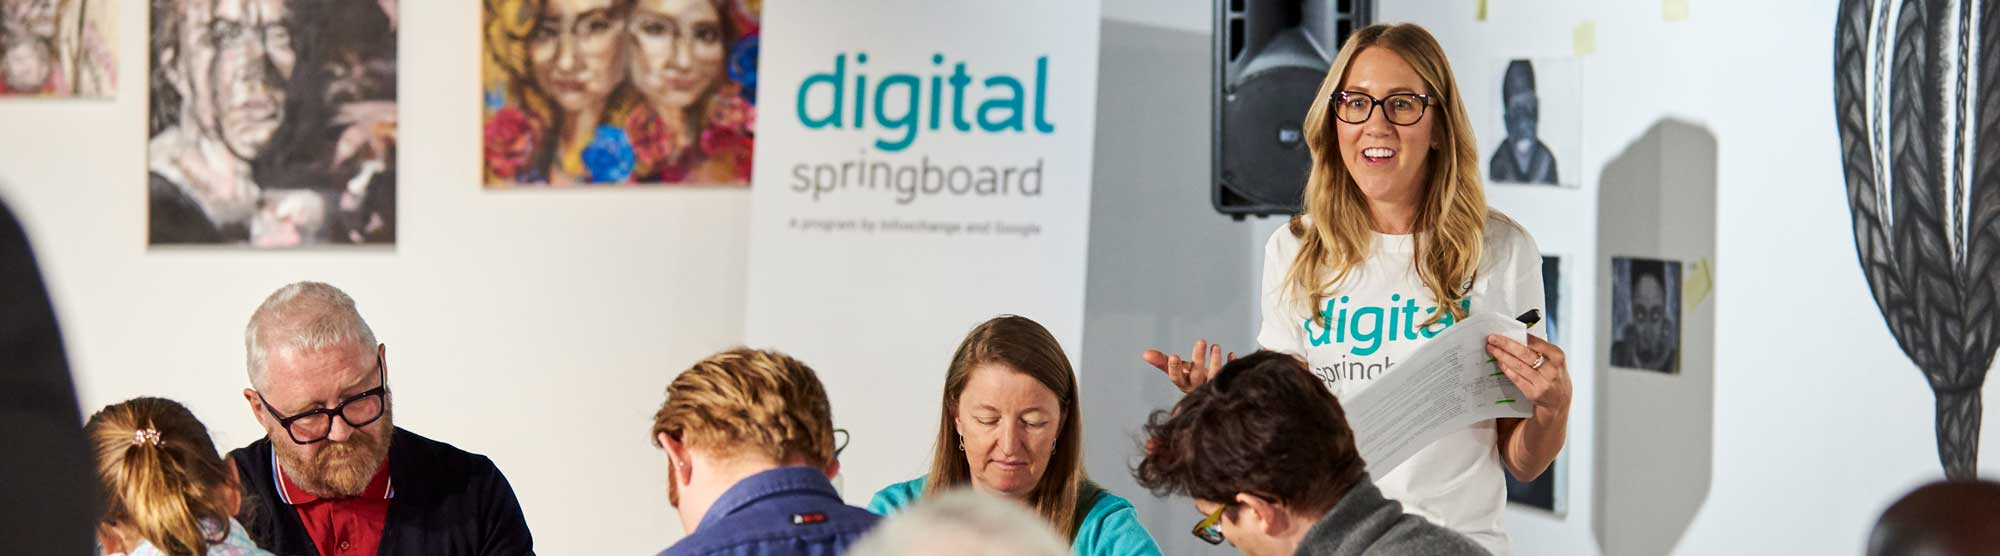 Trainer delivering Digital Springboard course